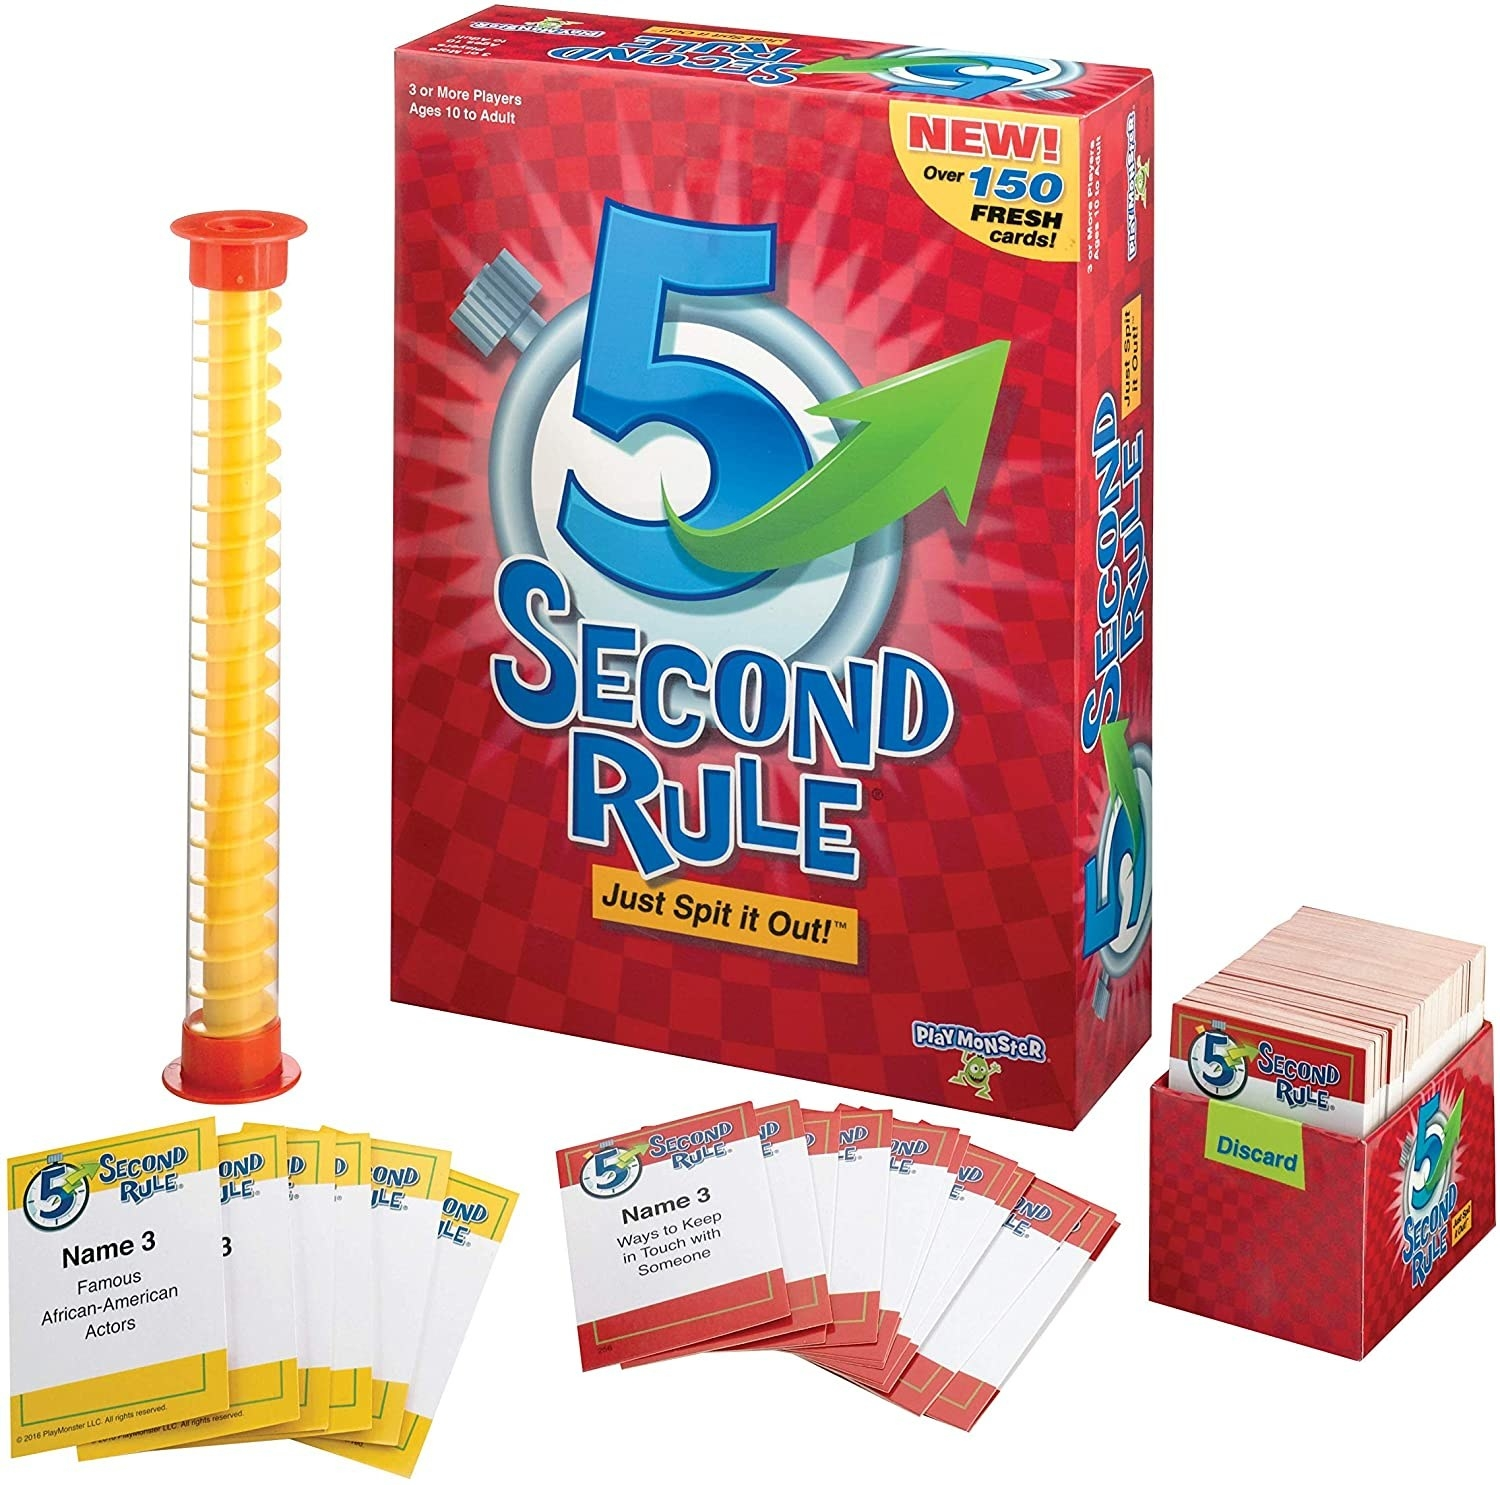 5 Second Rule box with prompt card and timer displayed